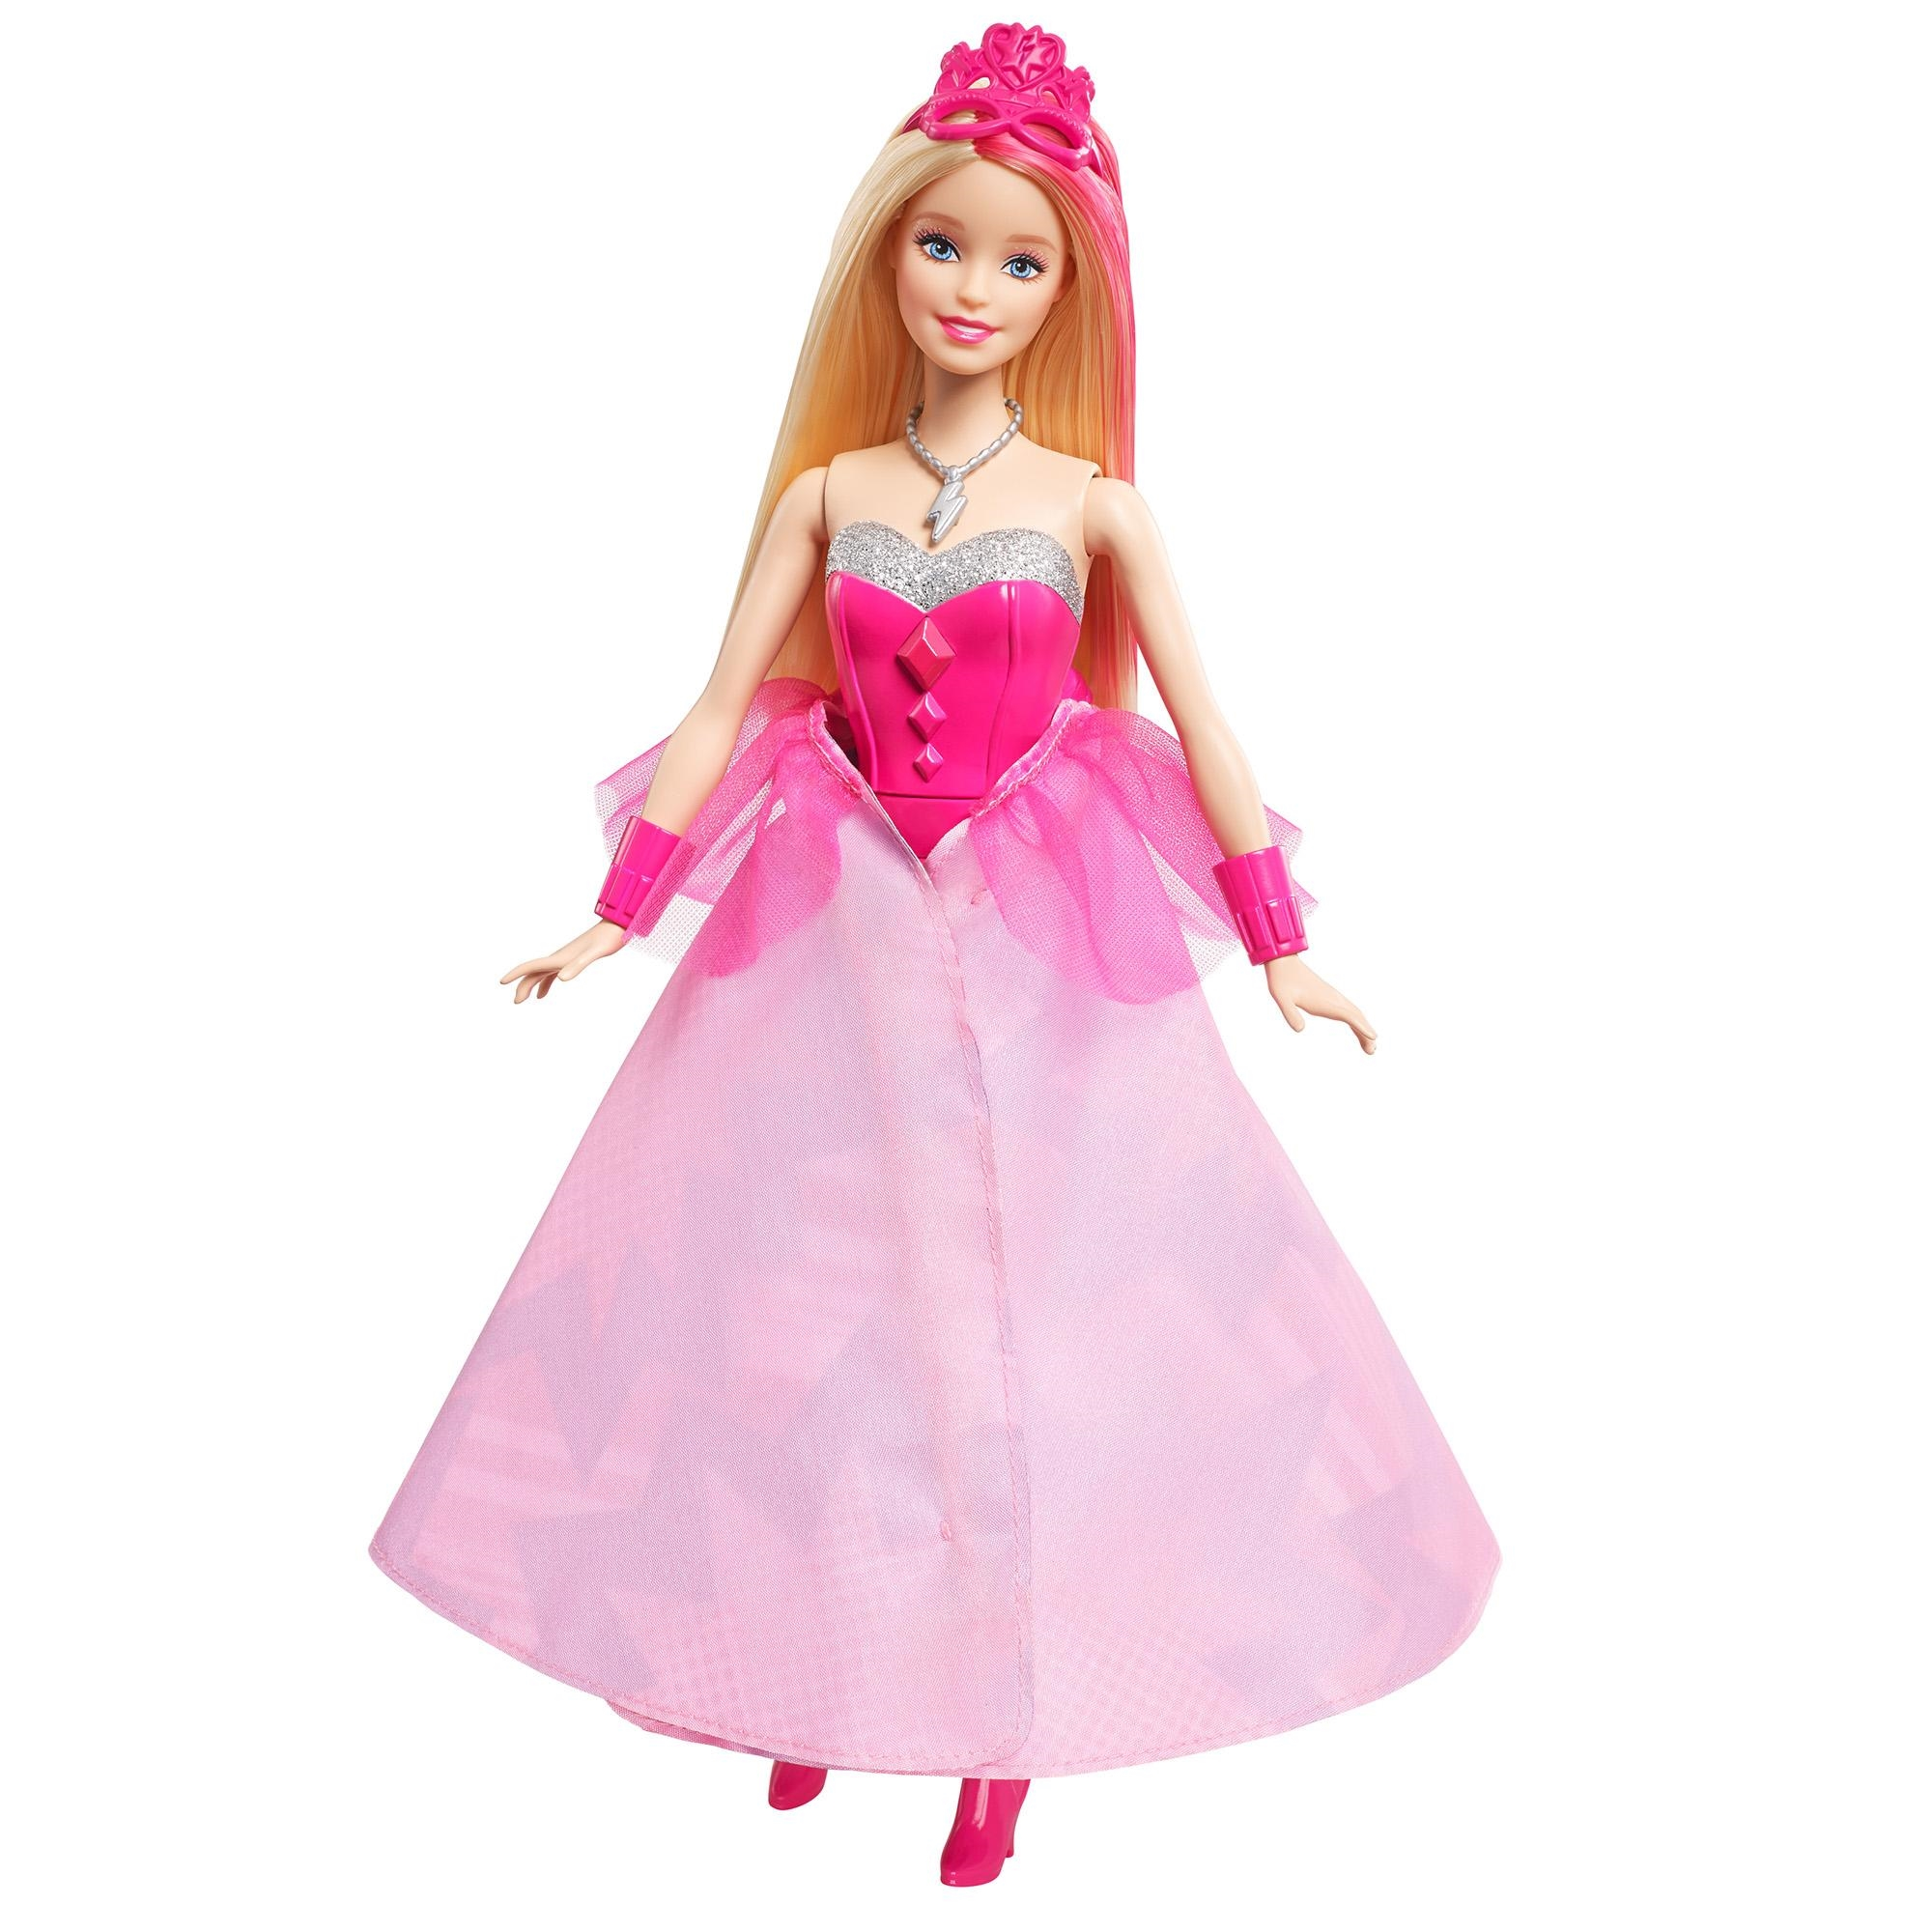 Download download wallpapers of barbie princess gallery - Barbie pictures download free ...